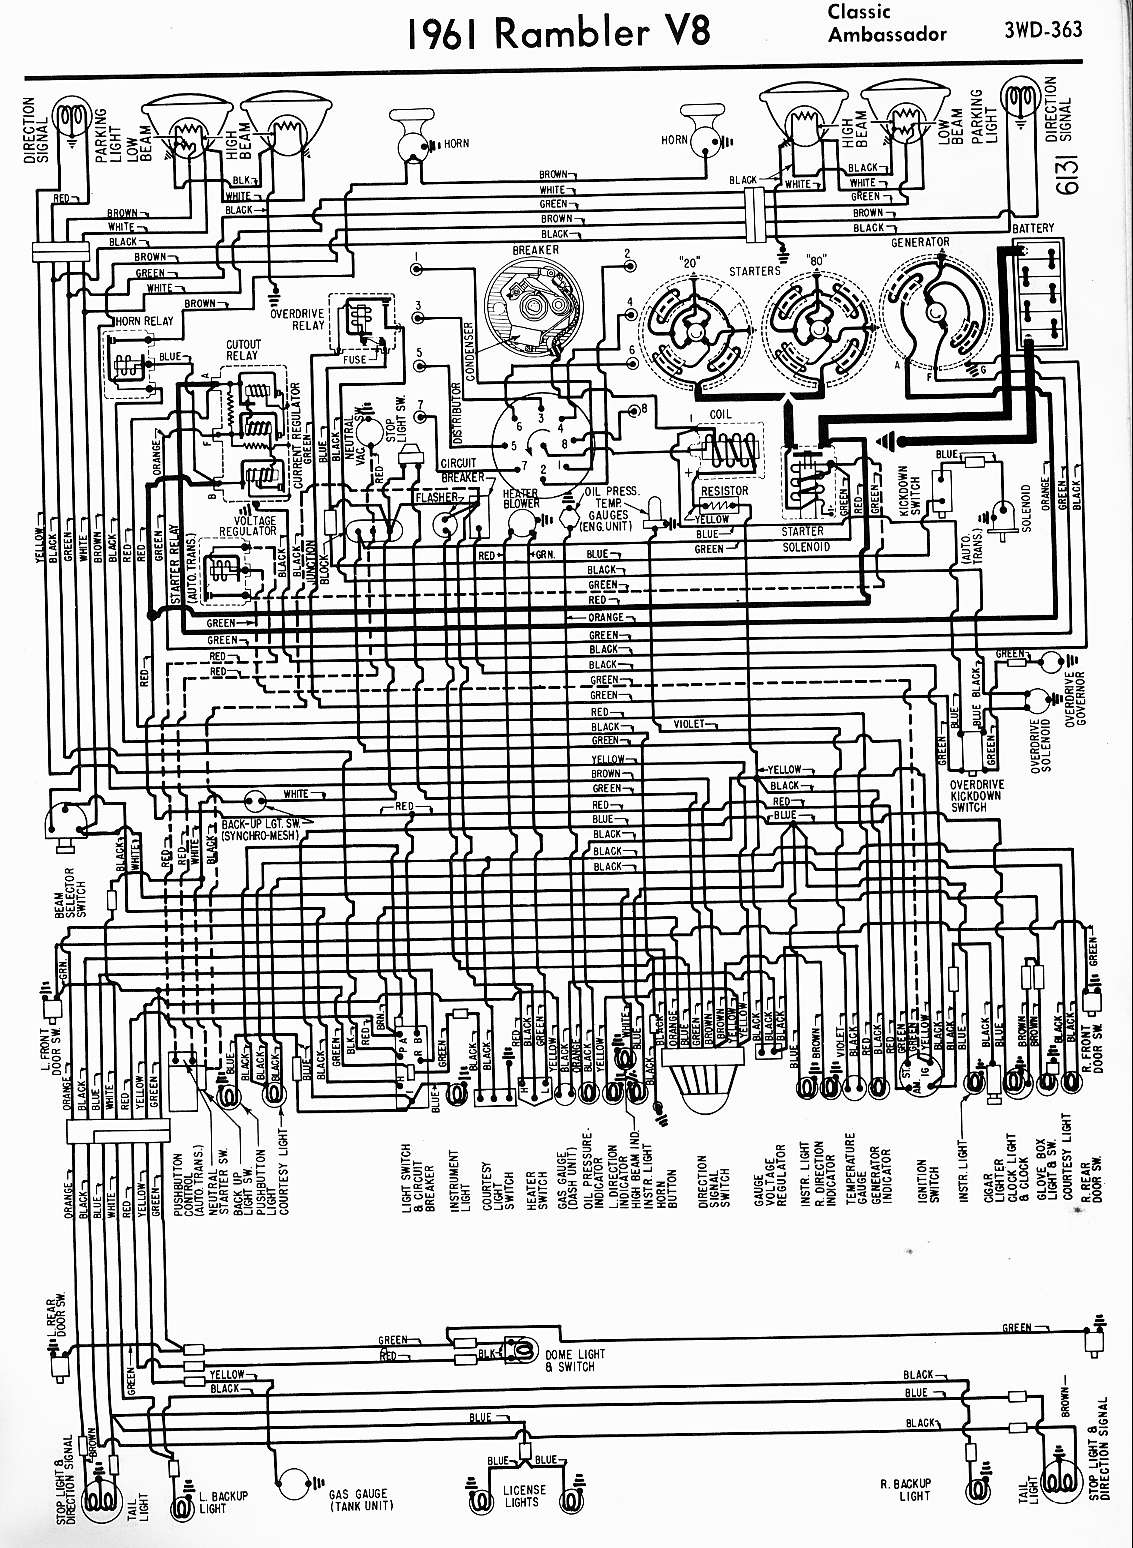 MWire5765 363 1962 rambler fuse box rambler convertible \u2022 wiring diagram 1961 Rambler at creativeand.co